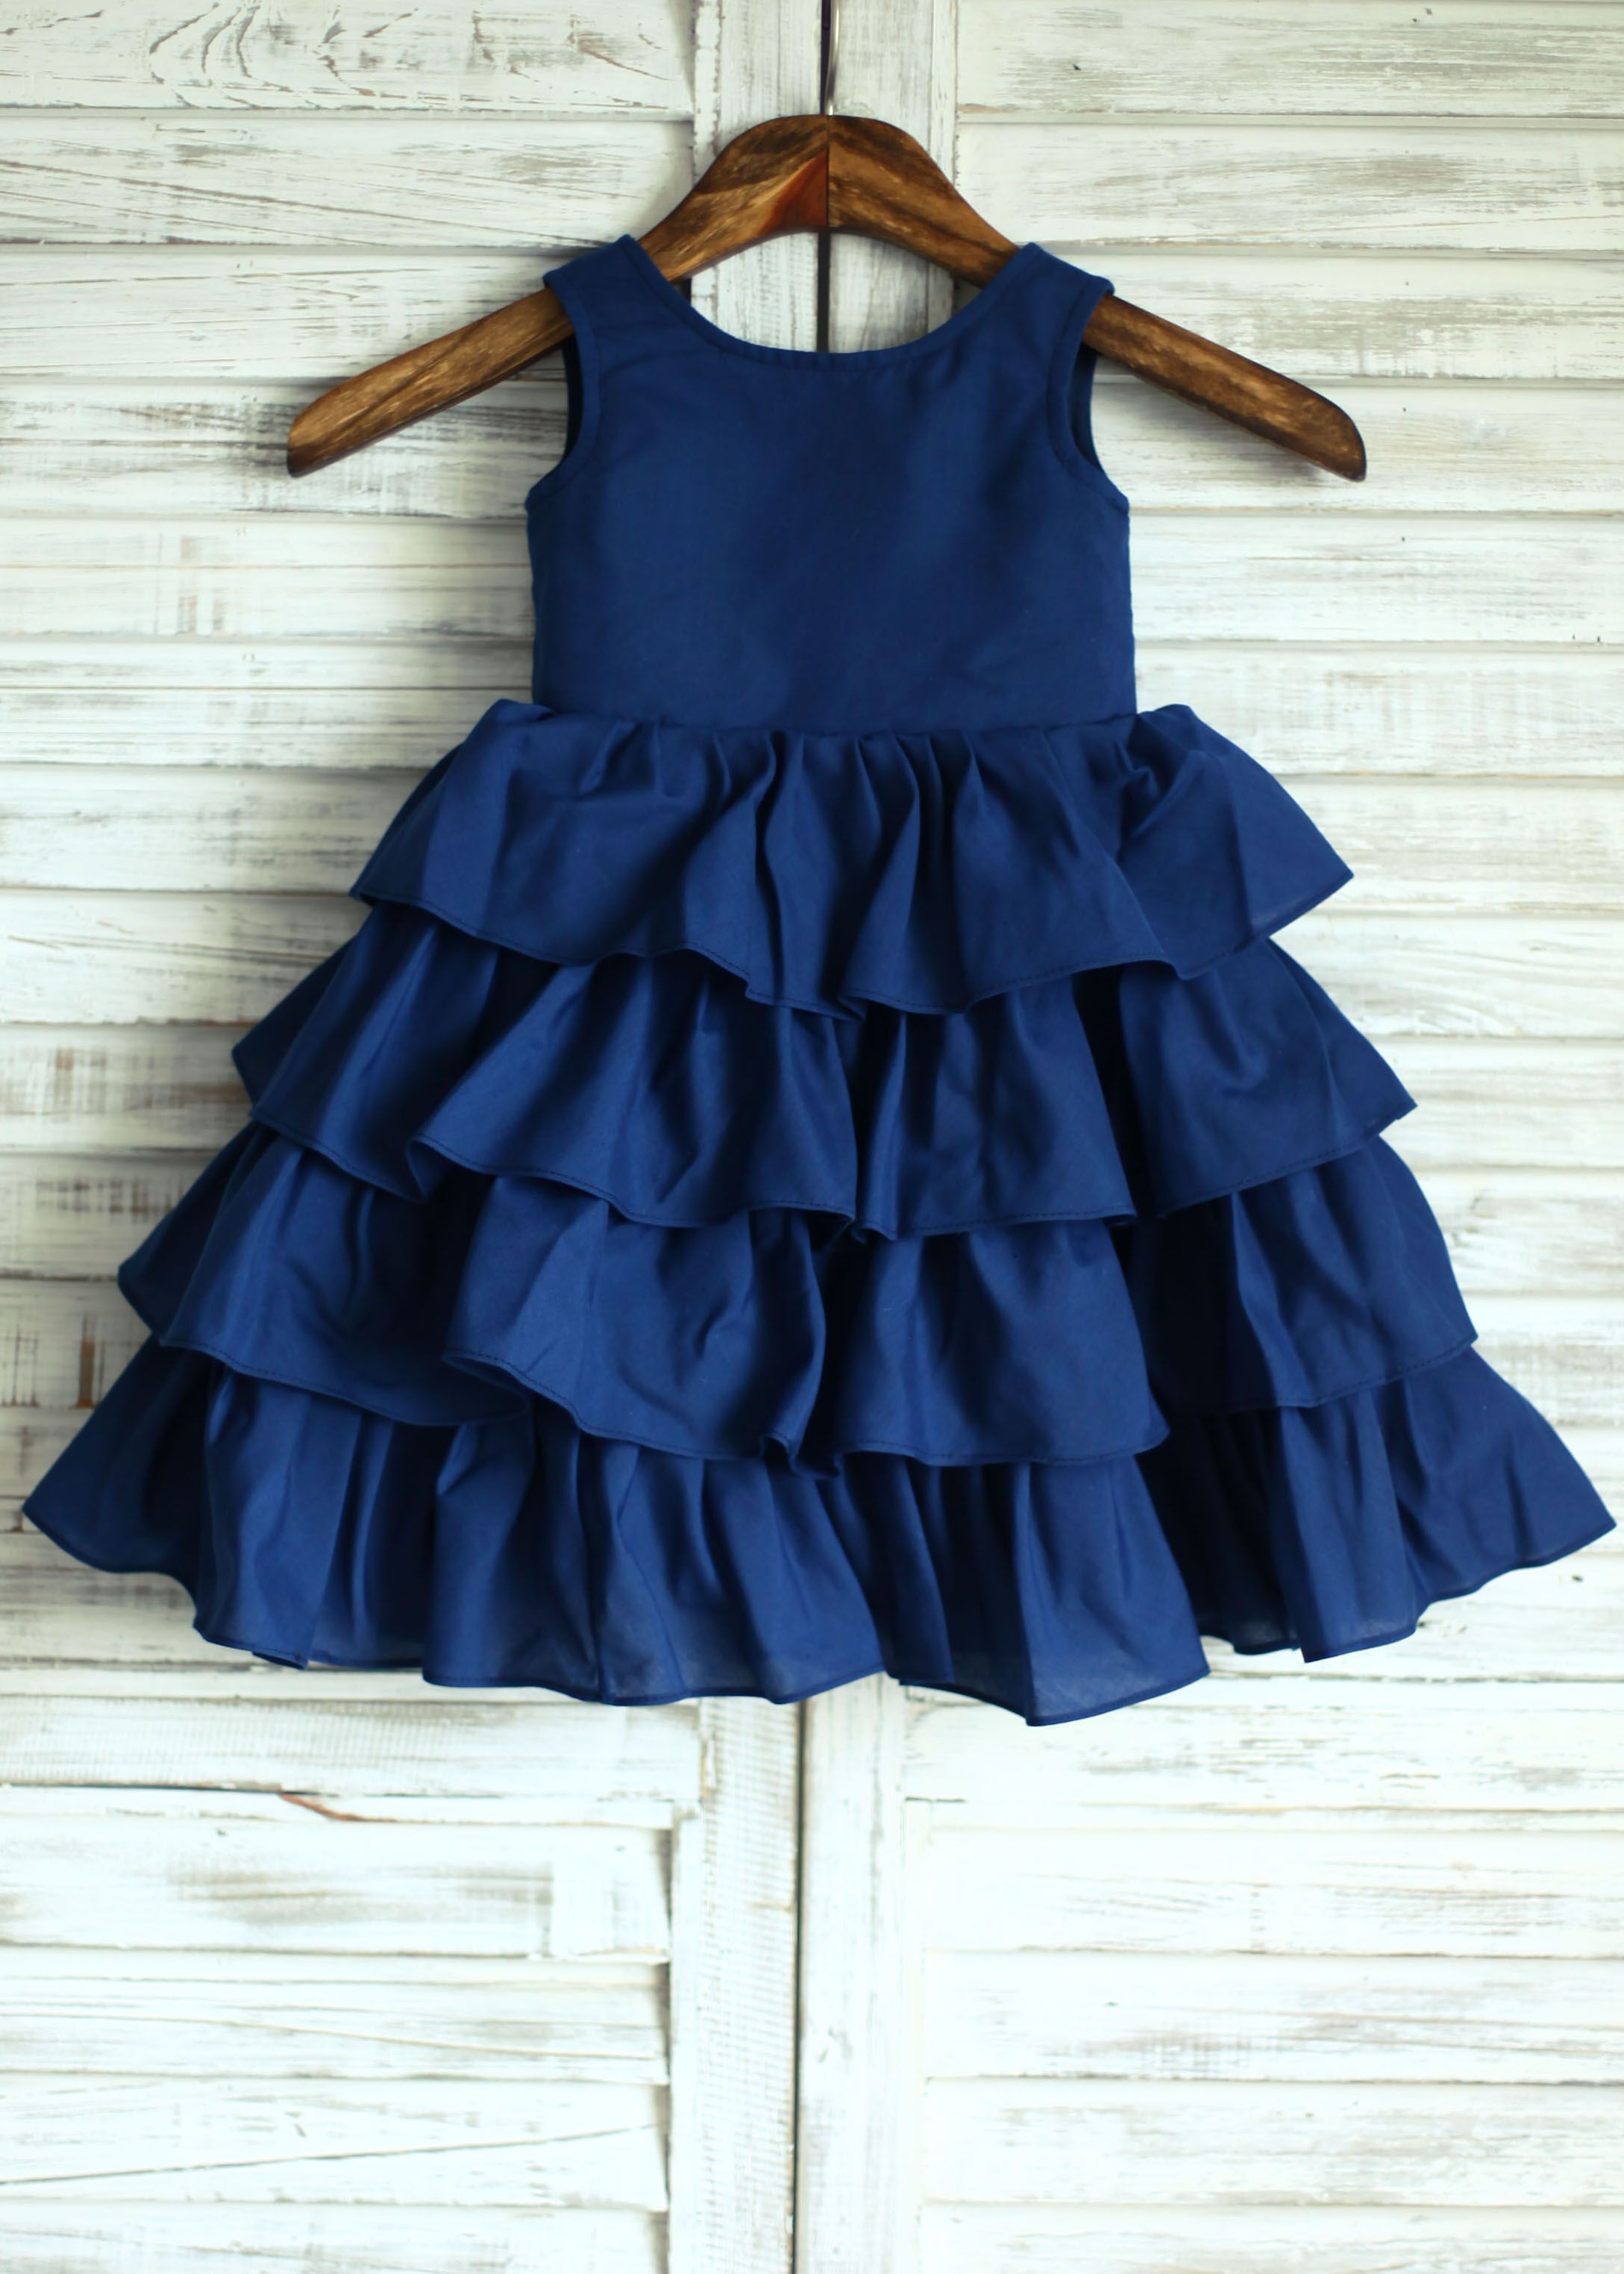 The dress is made of high quality cotton fabricThe listed color is navy bluemany other colors are available as wellThe skirt is cupcake style and in knee lengthWe used 3...